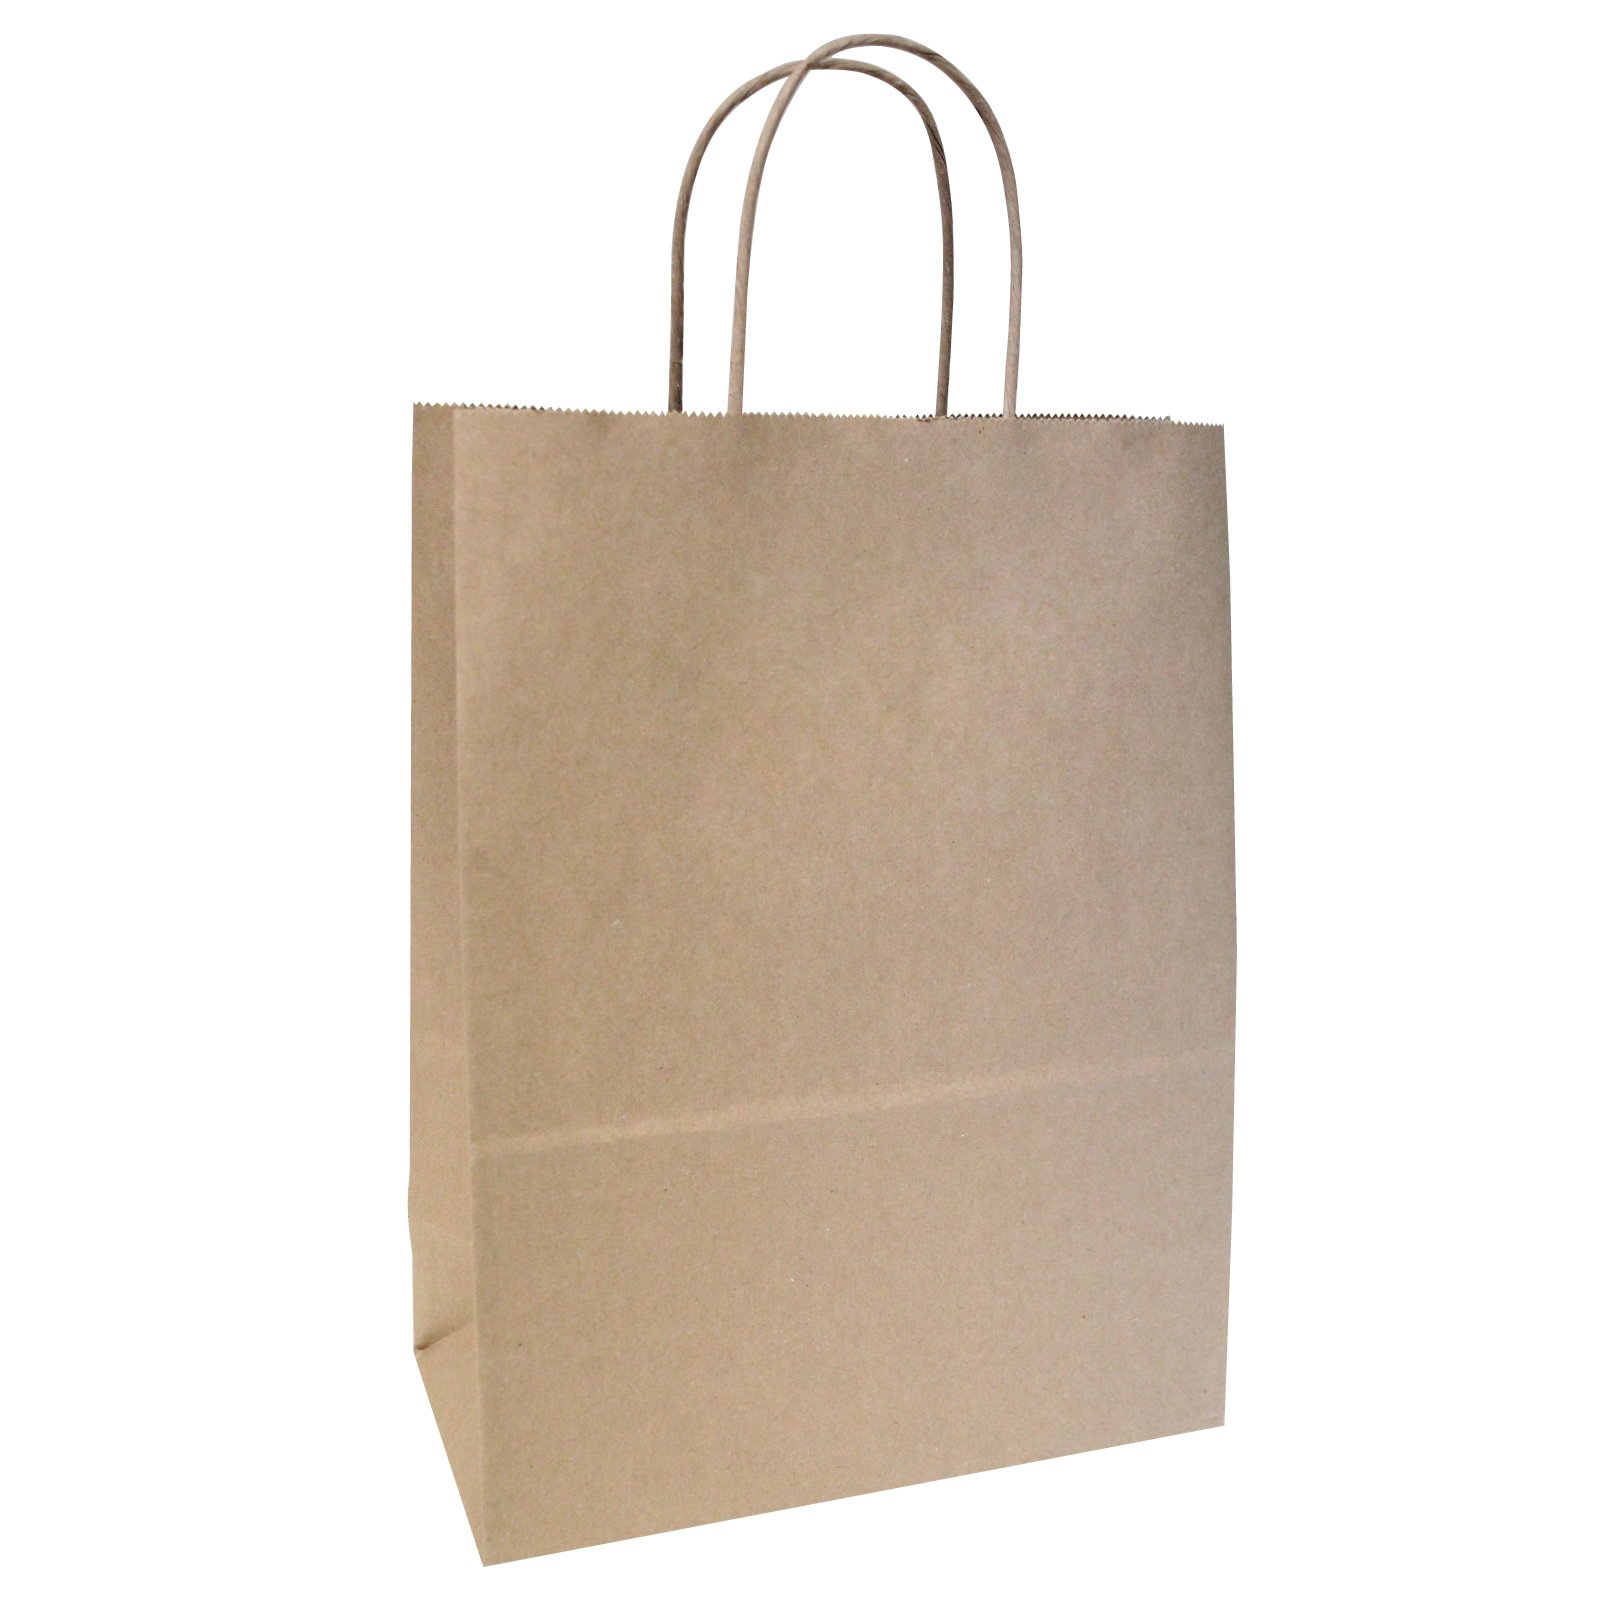 Flexicore Packaging Brown Kraft Paper Bags Size: 13 Inch X 7 Inch x 17 Inch | Count: 100 Bags | Color: Brown by Flexicore Packaging